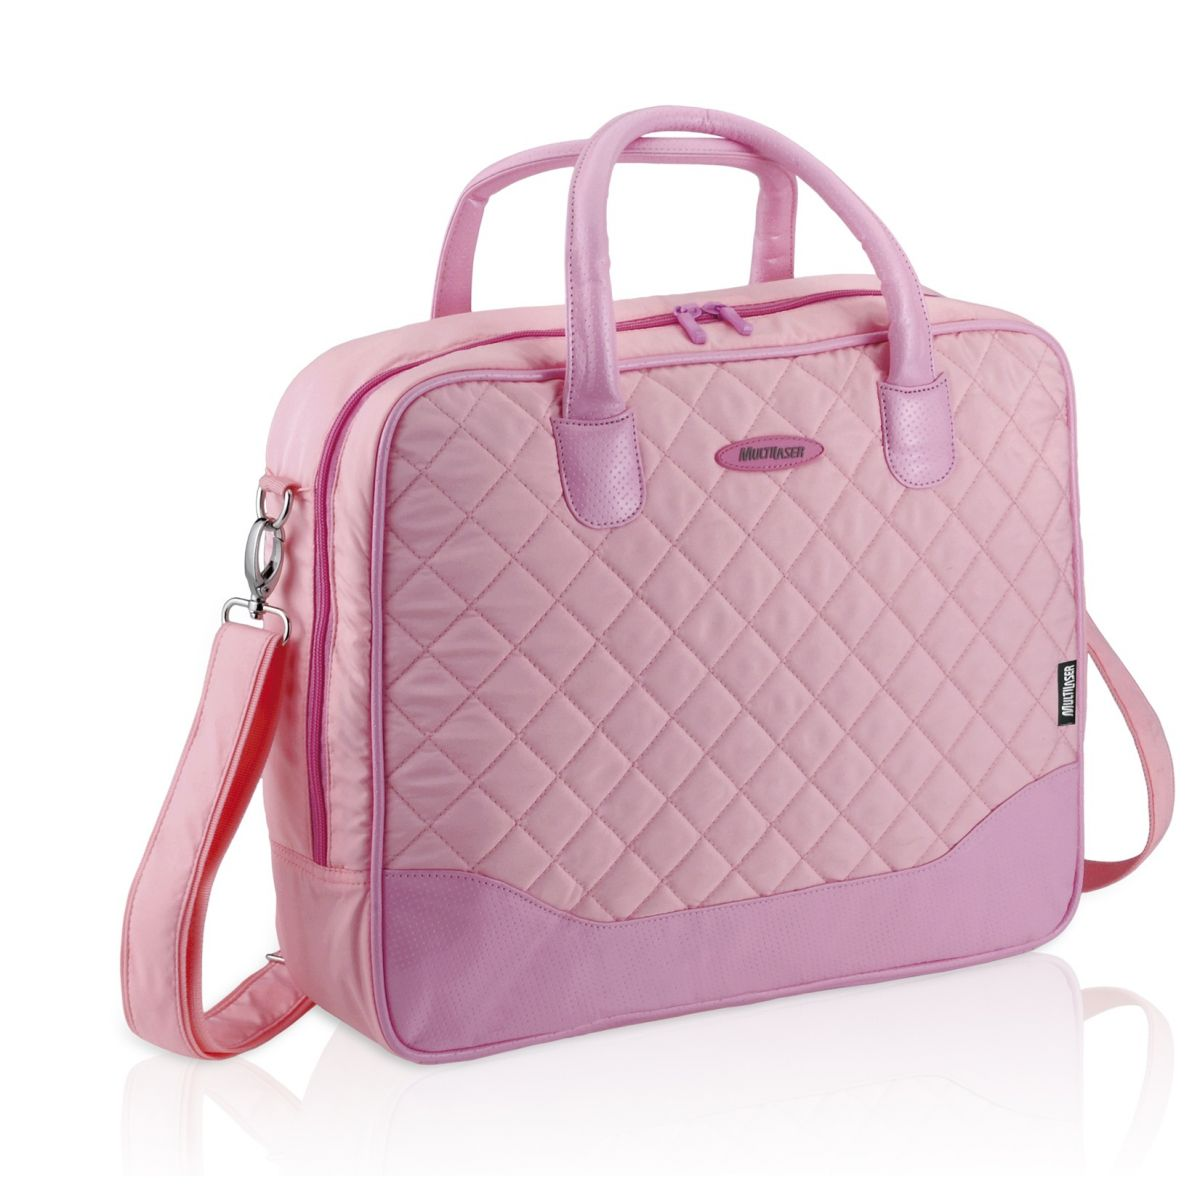 Bolsa Feminina Fashion Para Laptop BO025 - Multilaser